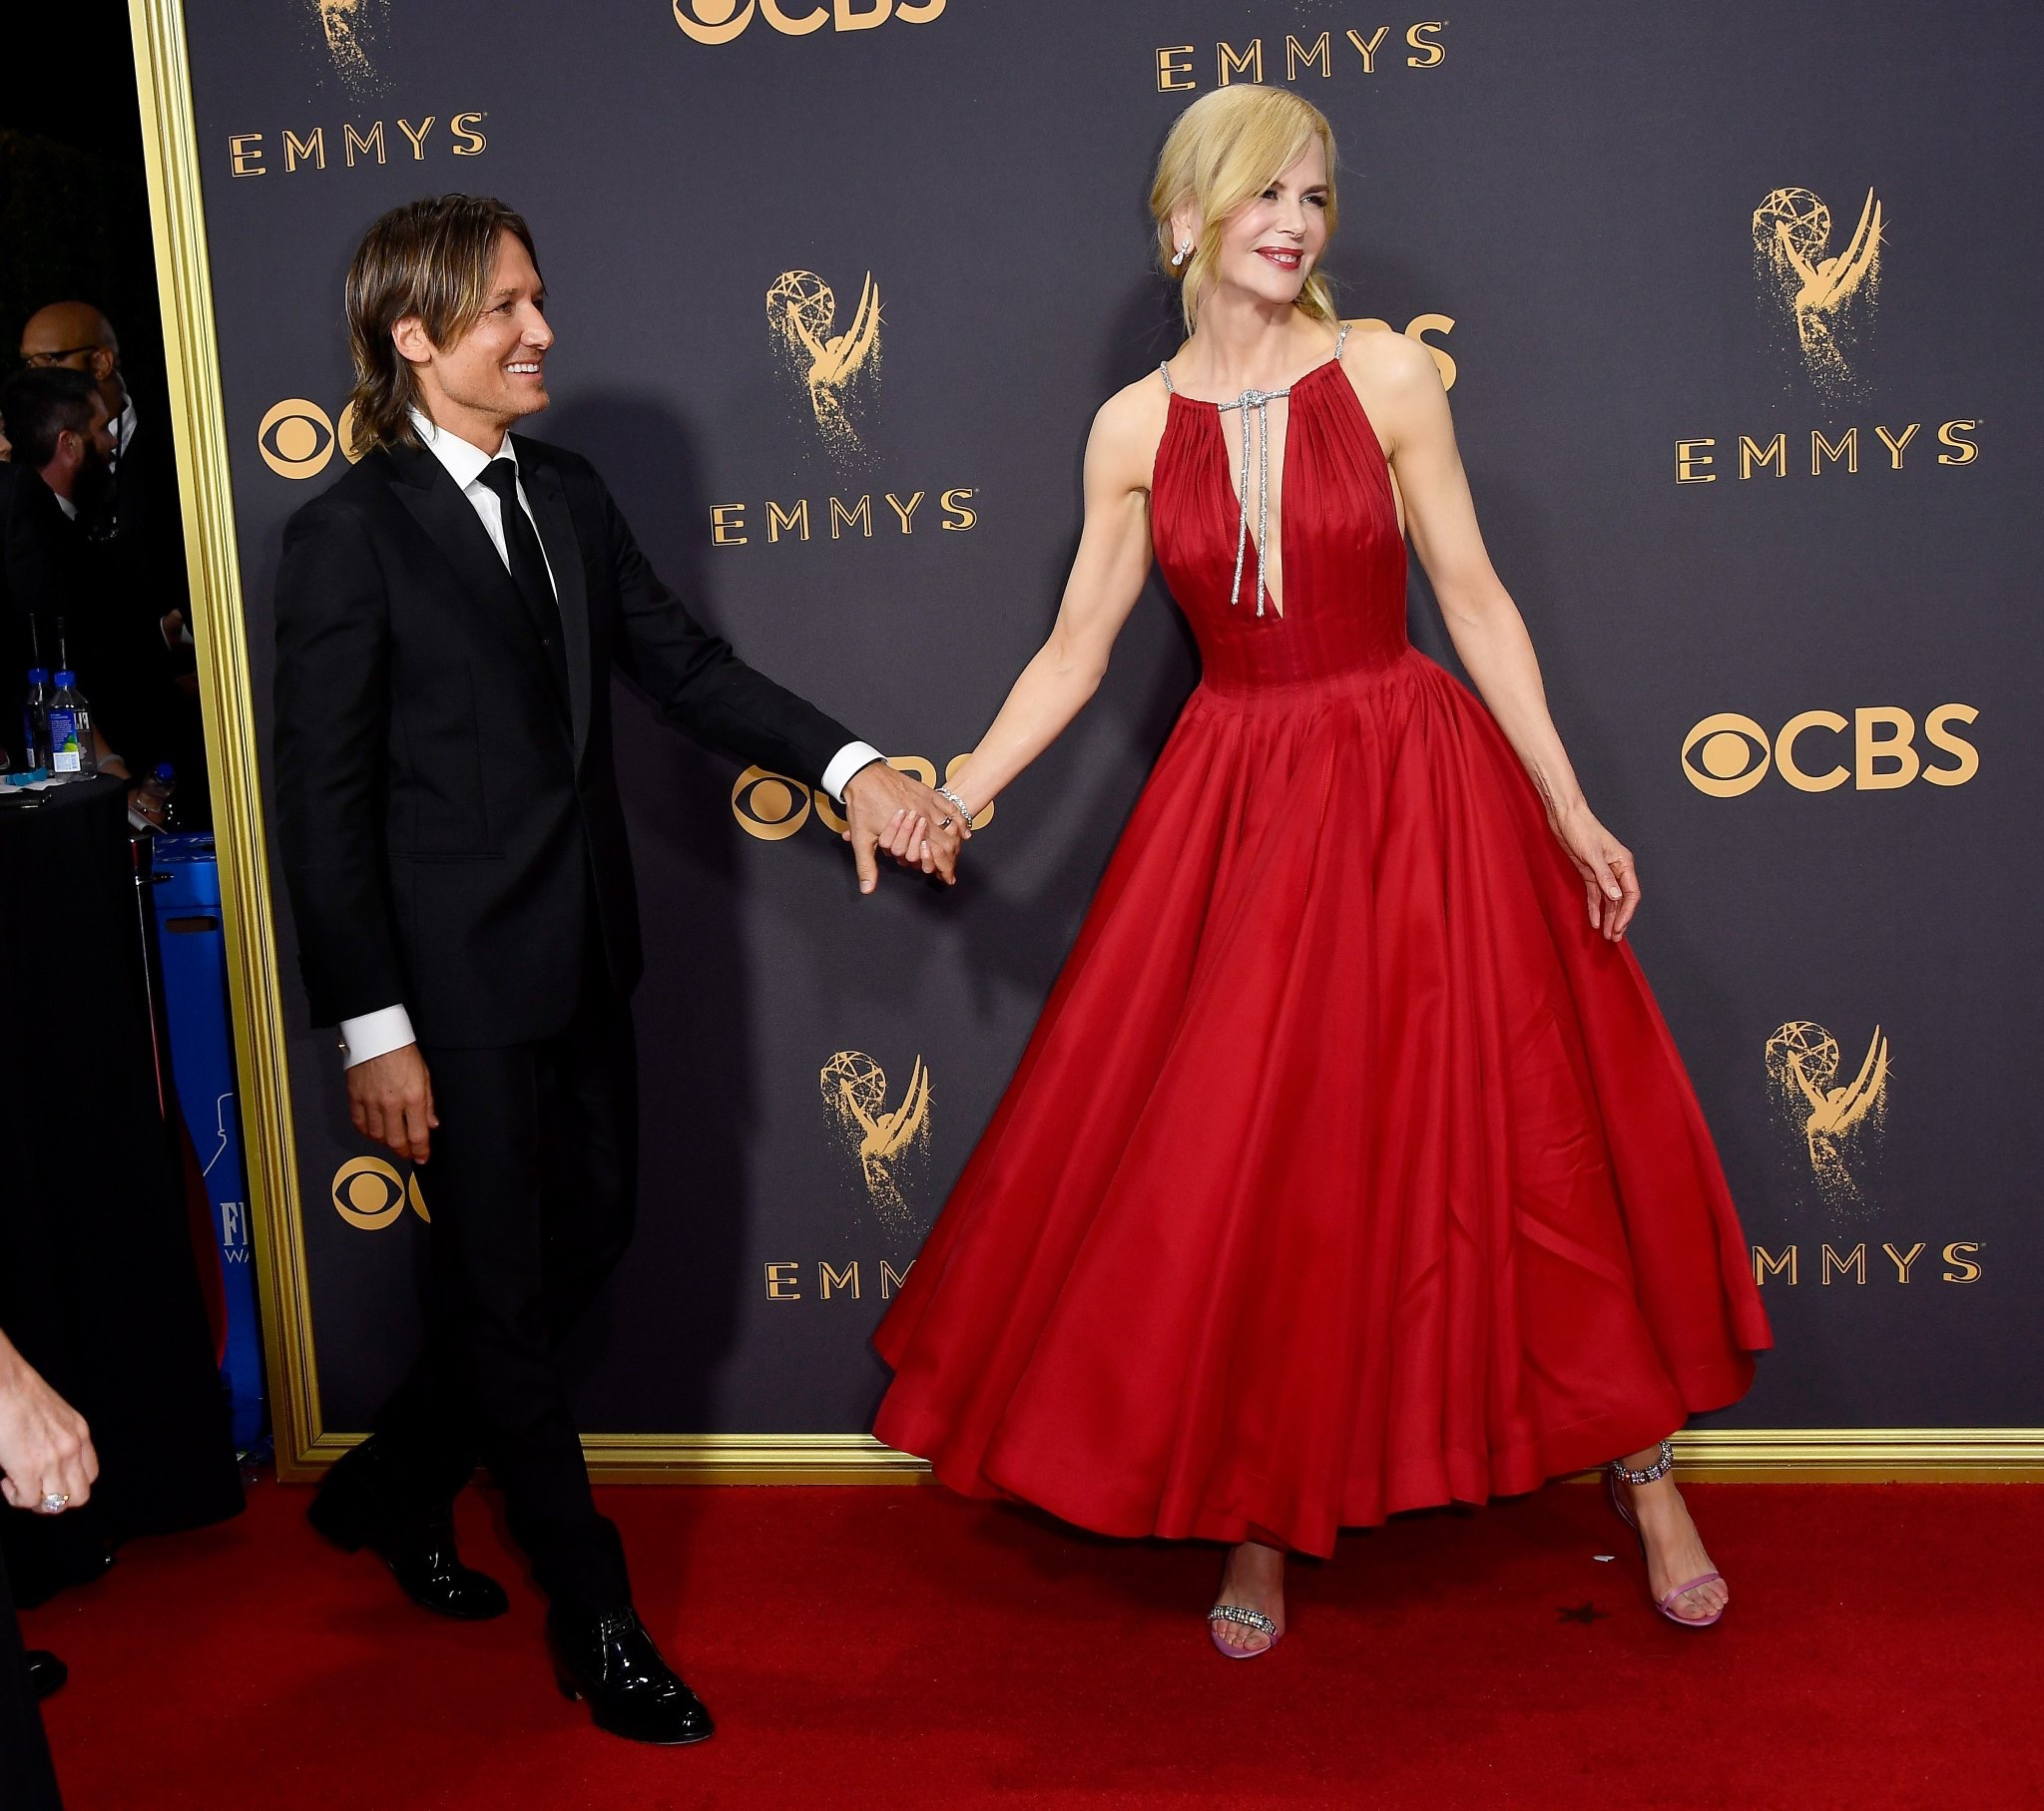 Emmys 2017: What You Missed